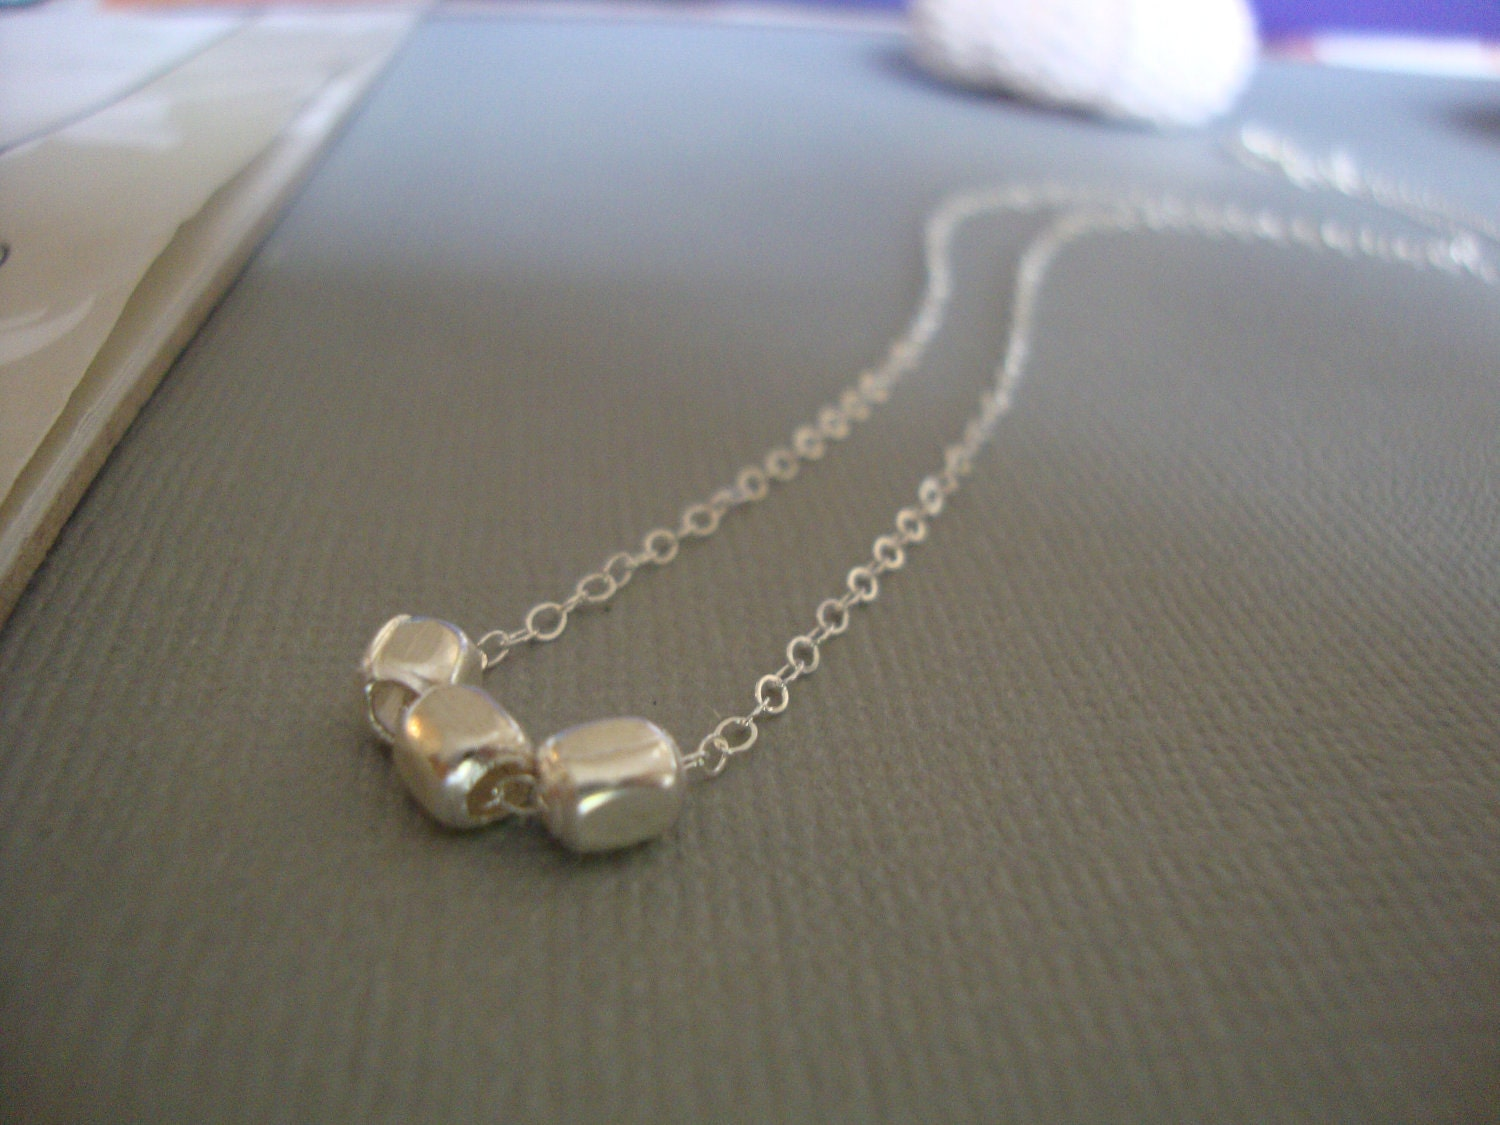 threesome - tiny barrel silver beads - minimal and modern jewelry